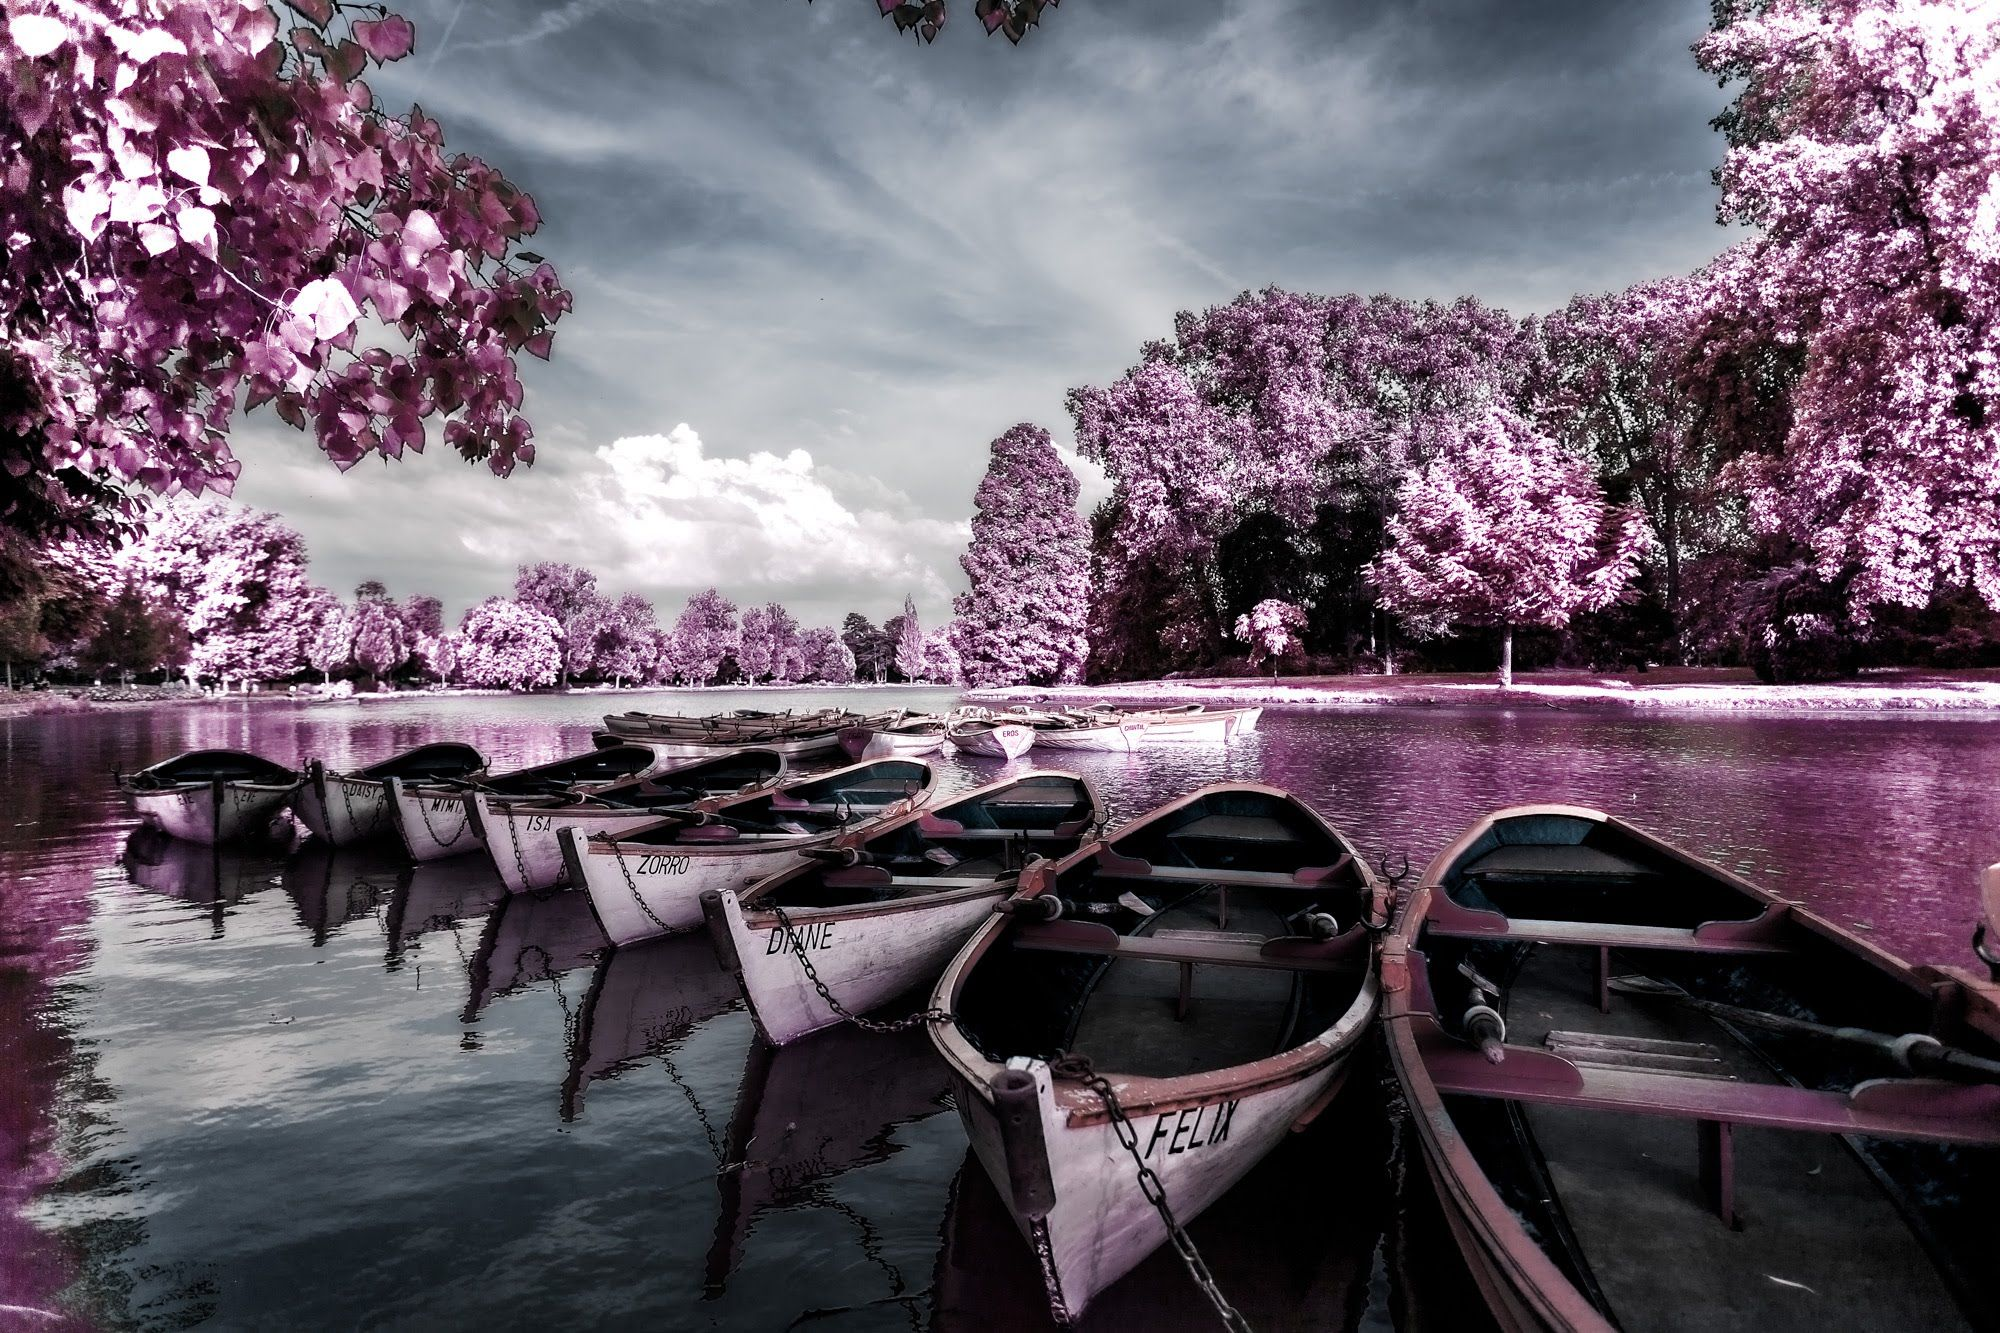 In this week's tutorial by Serge Ramelli you will learn the steps to apply an infrared look to your countryside photos in Photoshop. To download the source